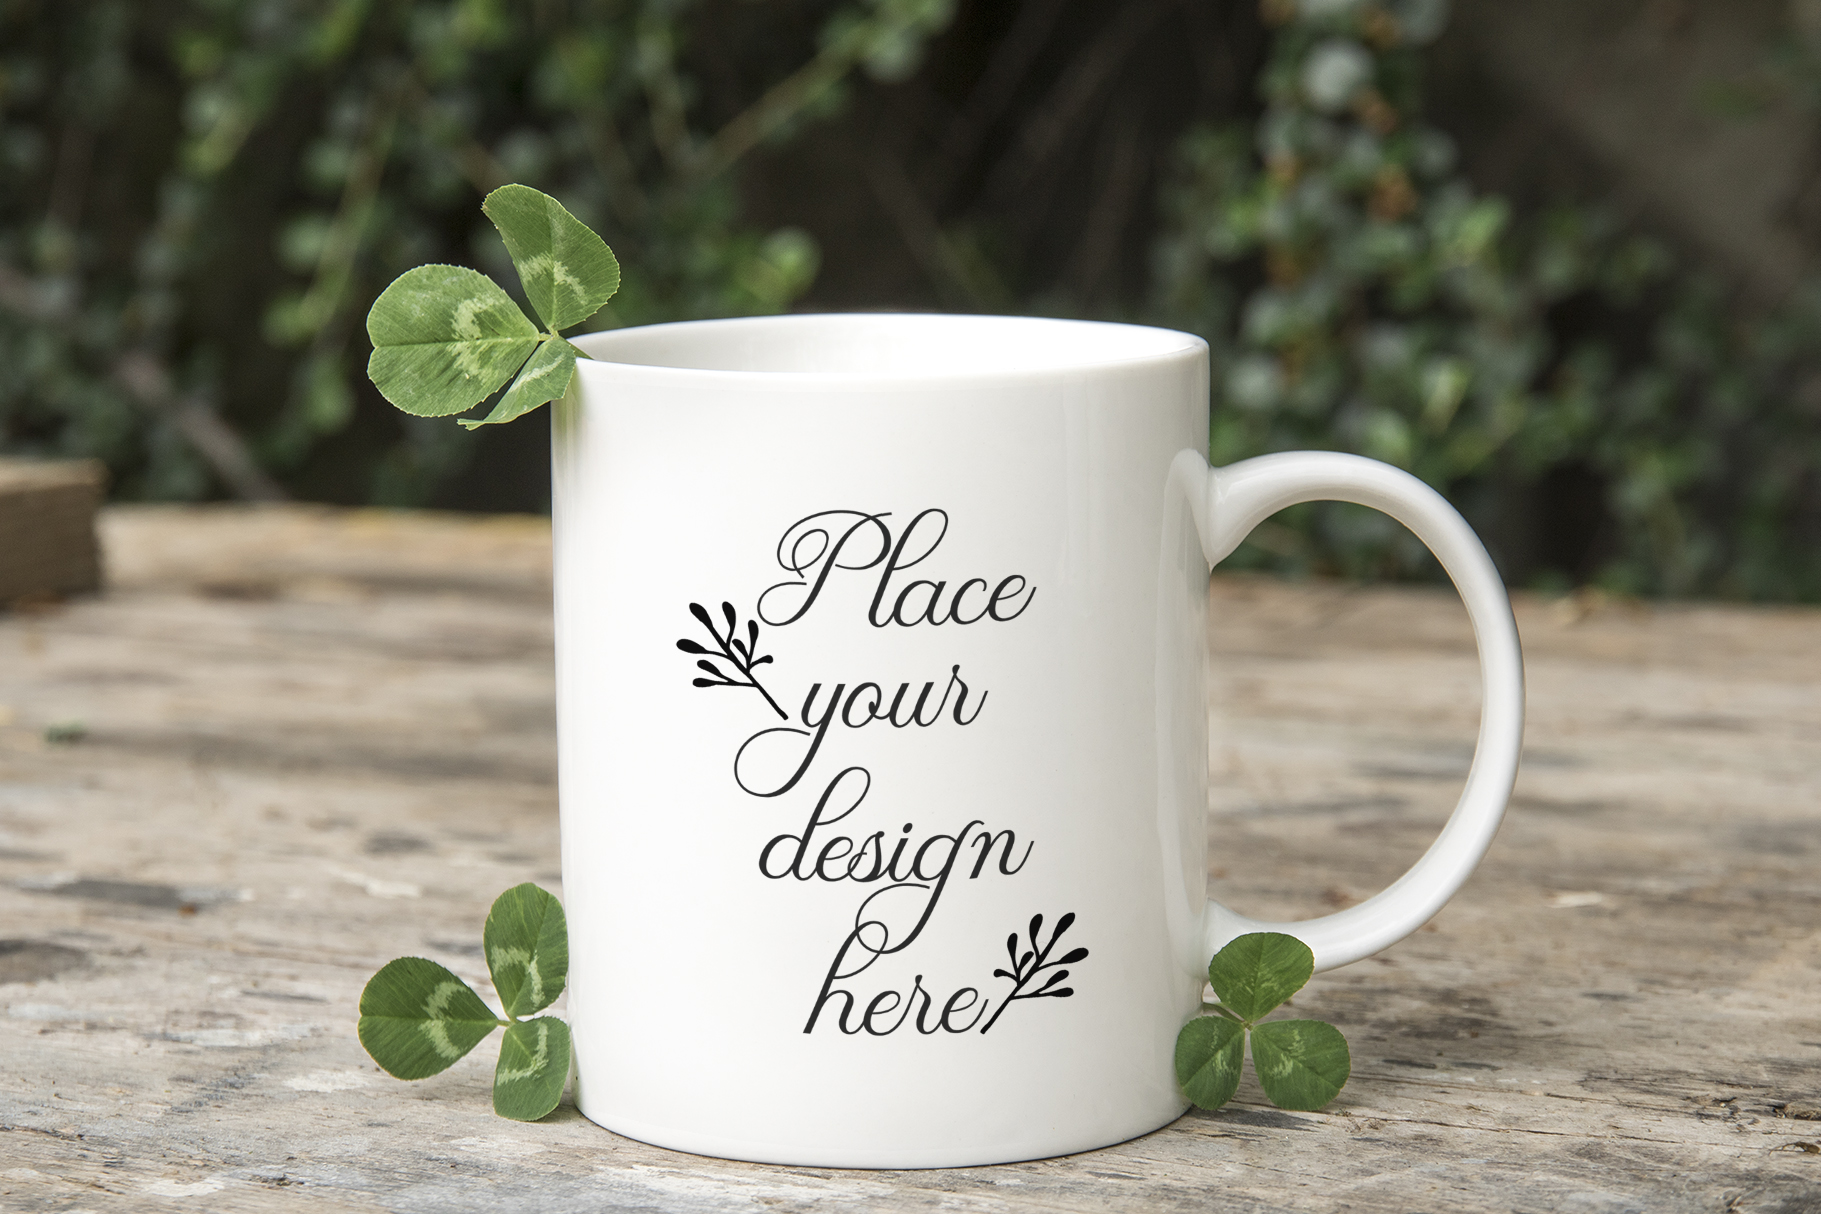 Download Free St Patricks Day 11oz Coffee Mug Mockup Graphic By Leo Flo for Cricut Explore, Silhouette and other cutting machines.